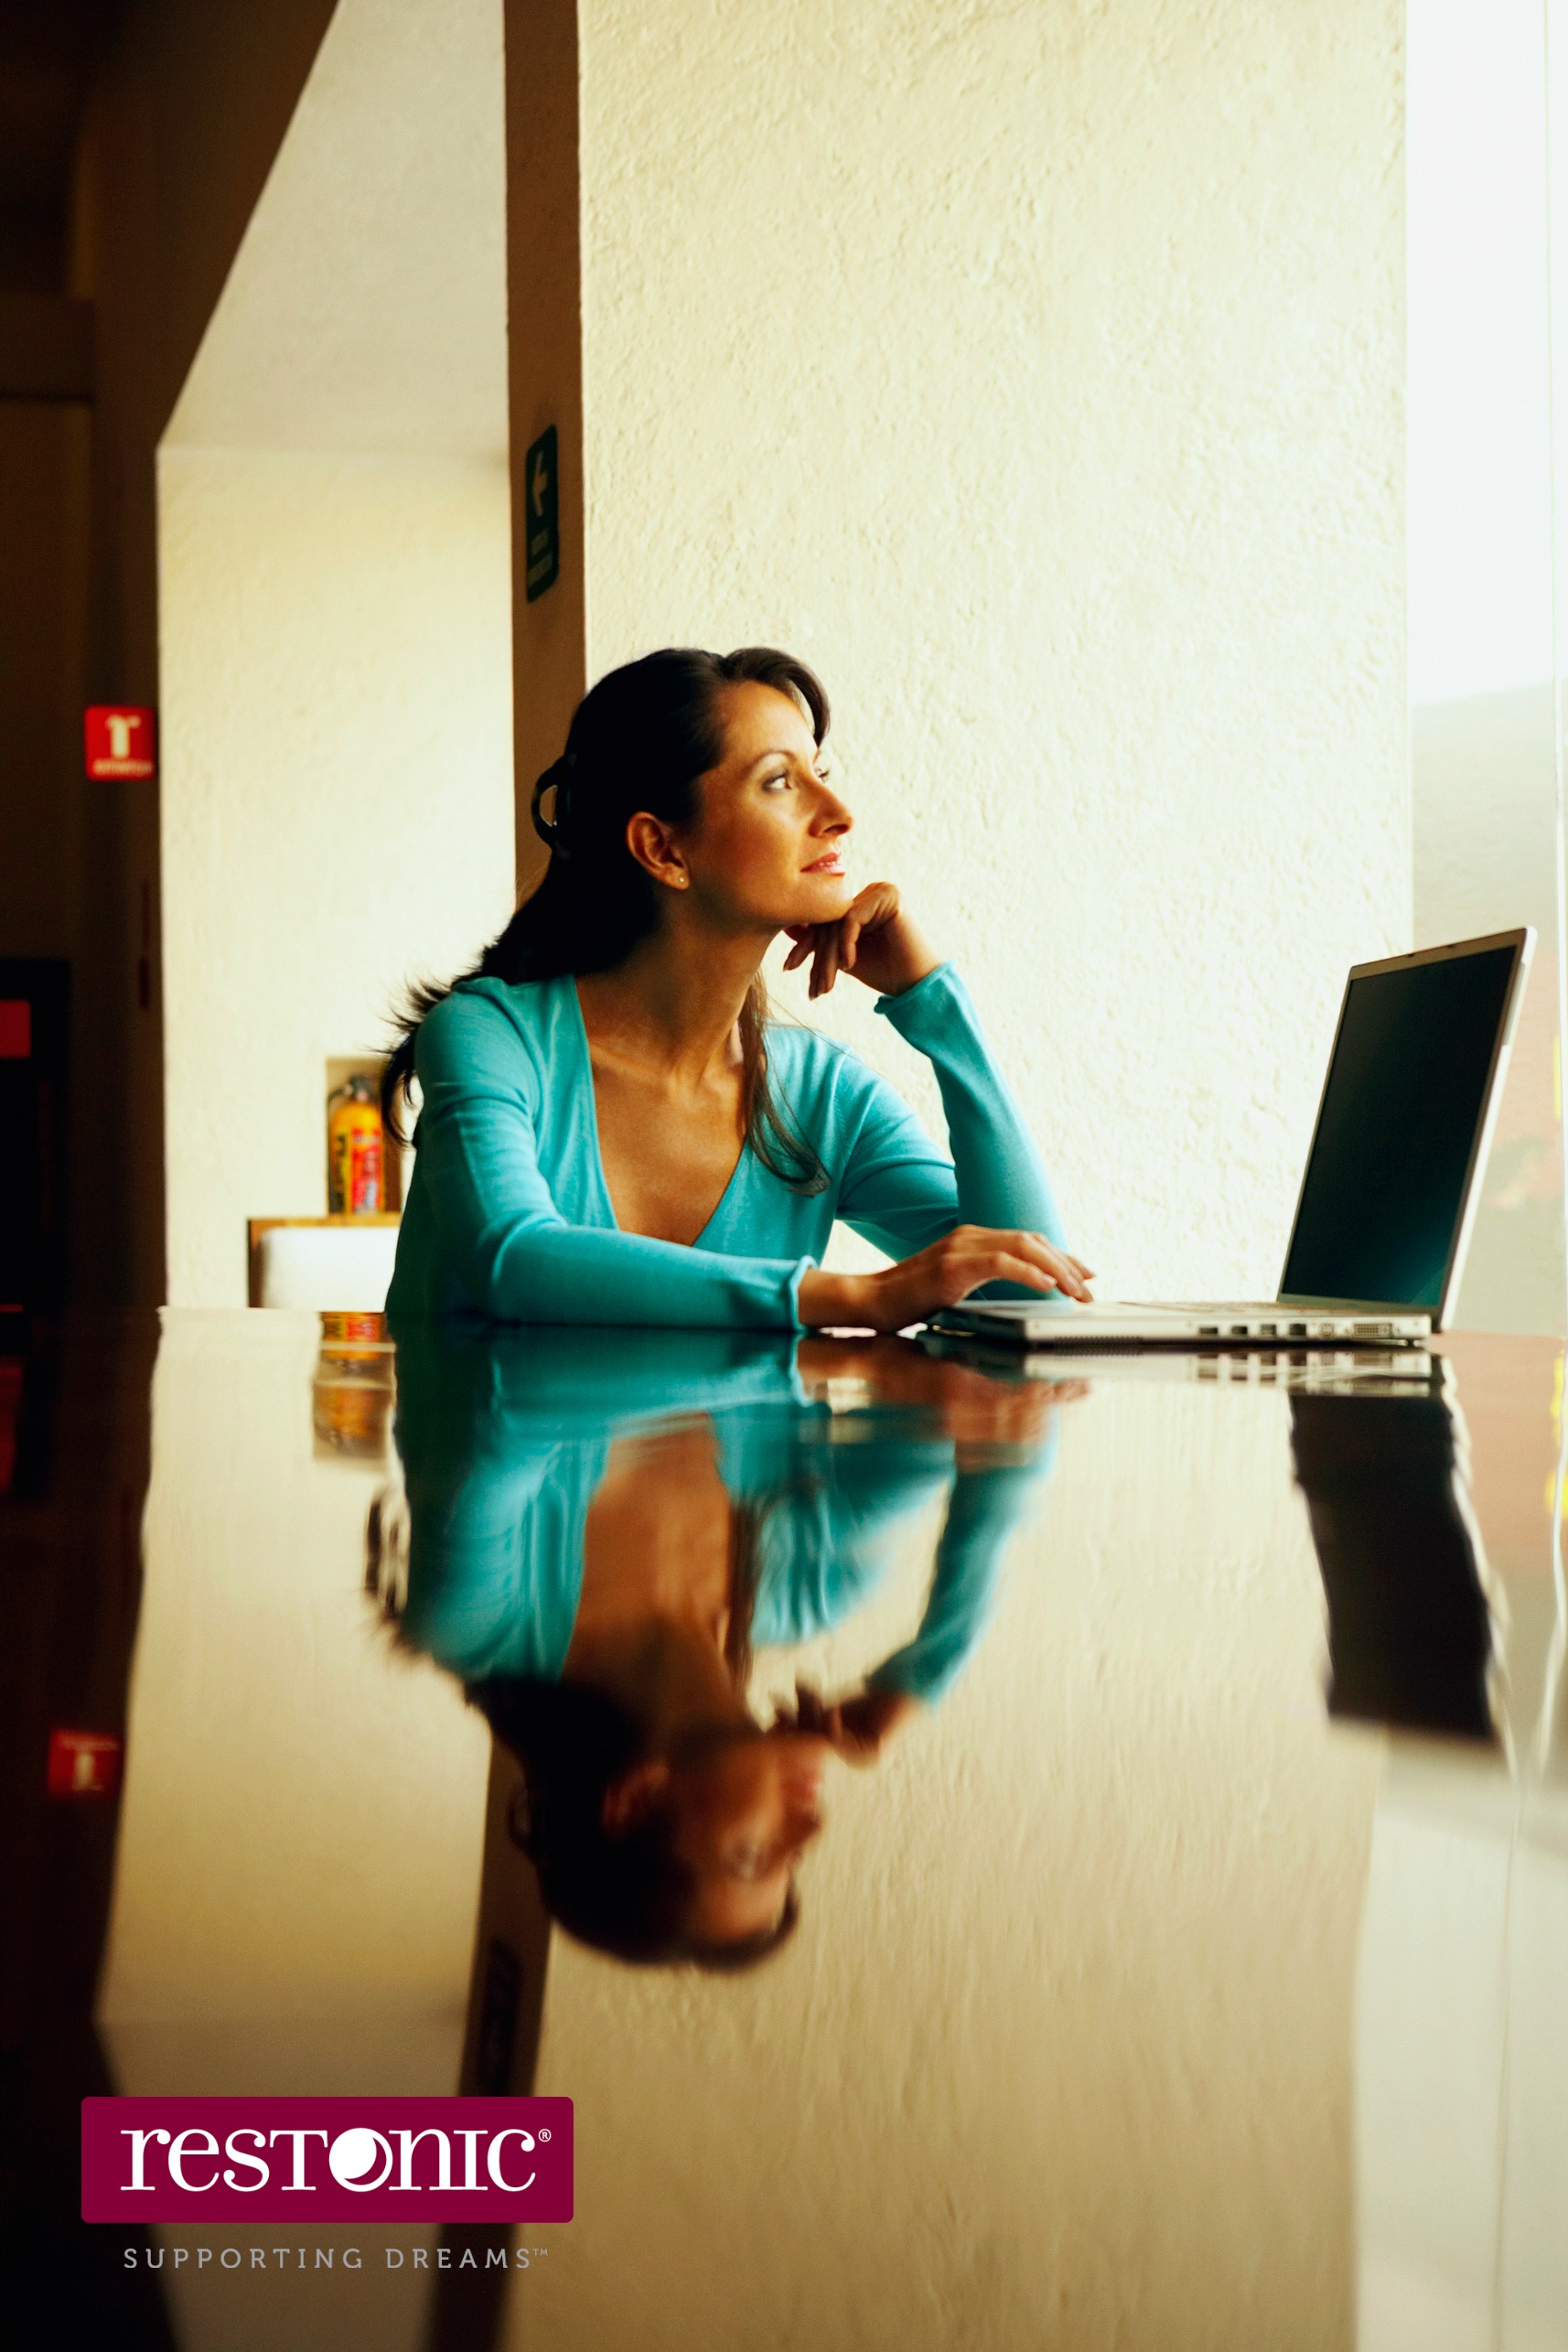 Woman sitting at a table using a laptop to read online mattress reviews prior to purchasing a new mattress.